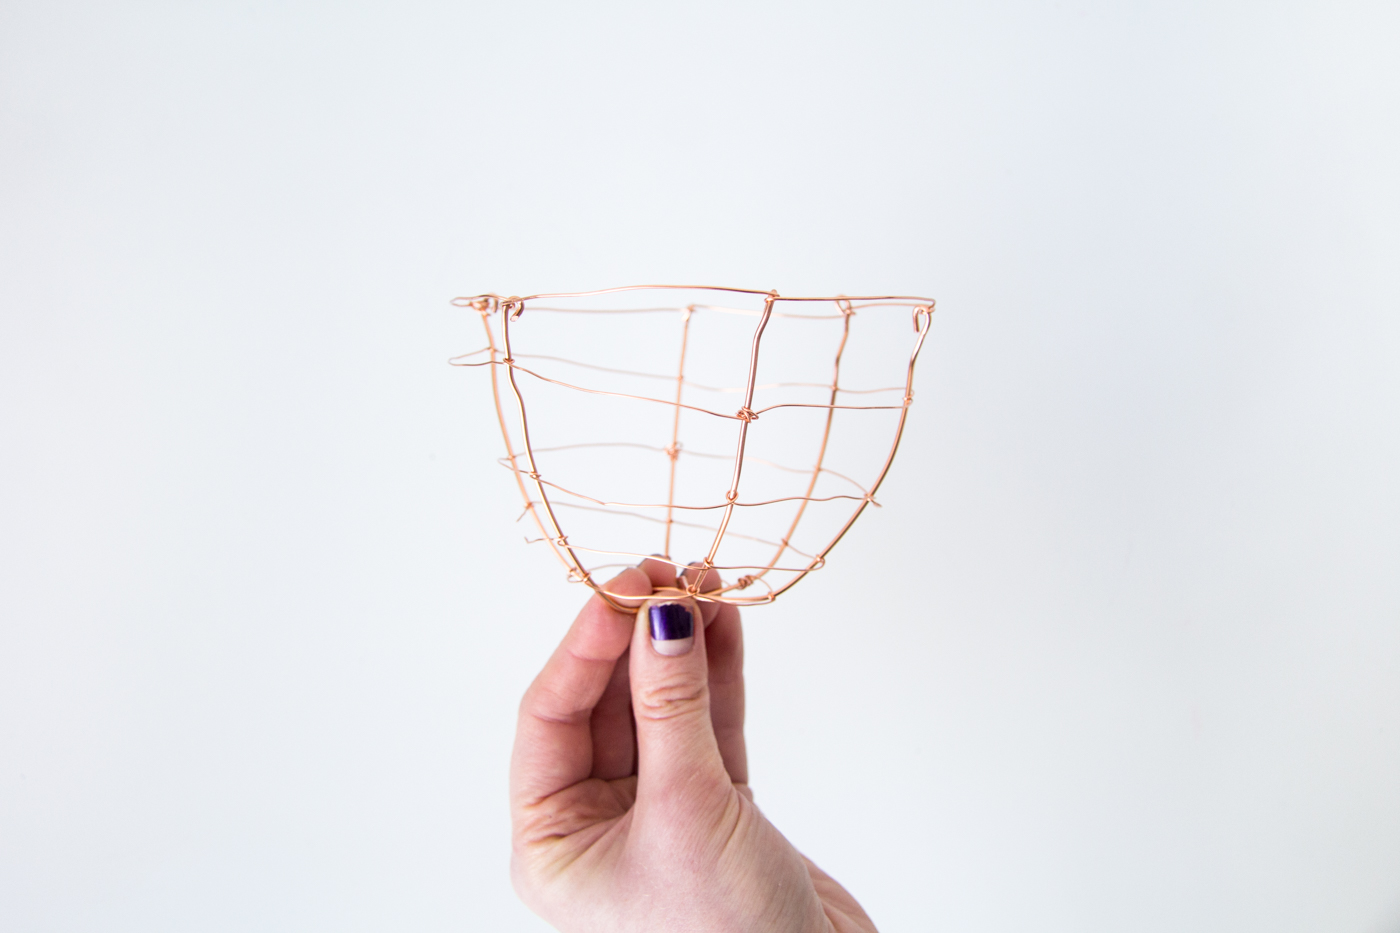 DIY Copper Wire Easter Egg Baskets | @fallfordiy Step 7b